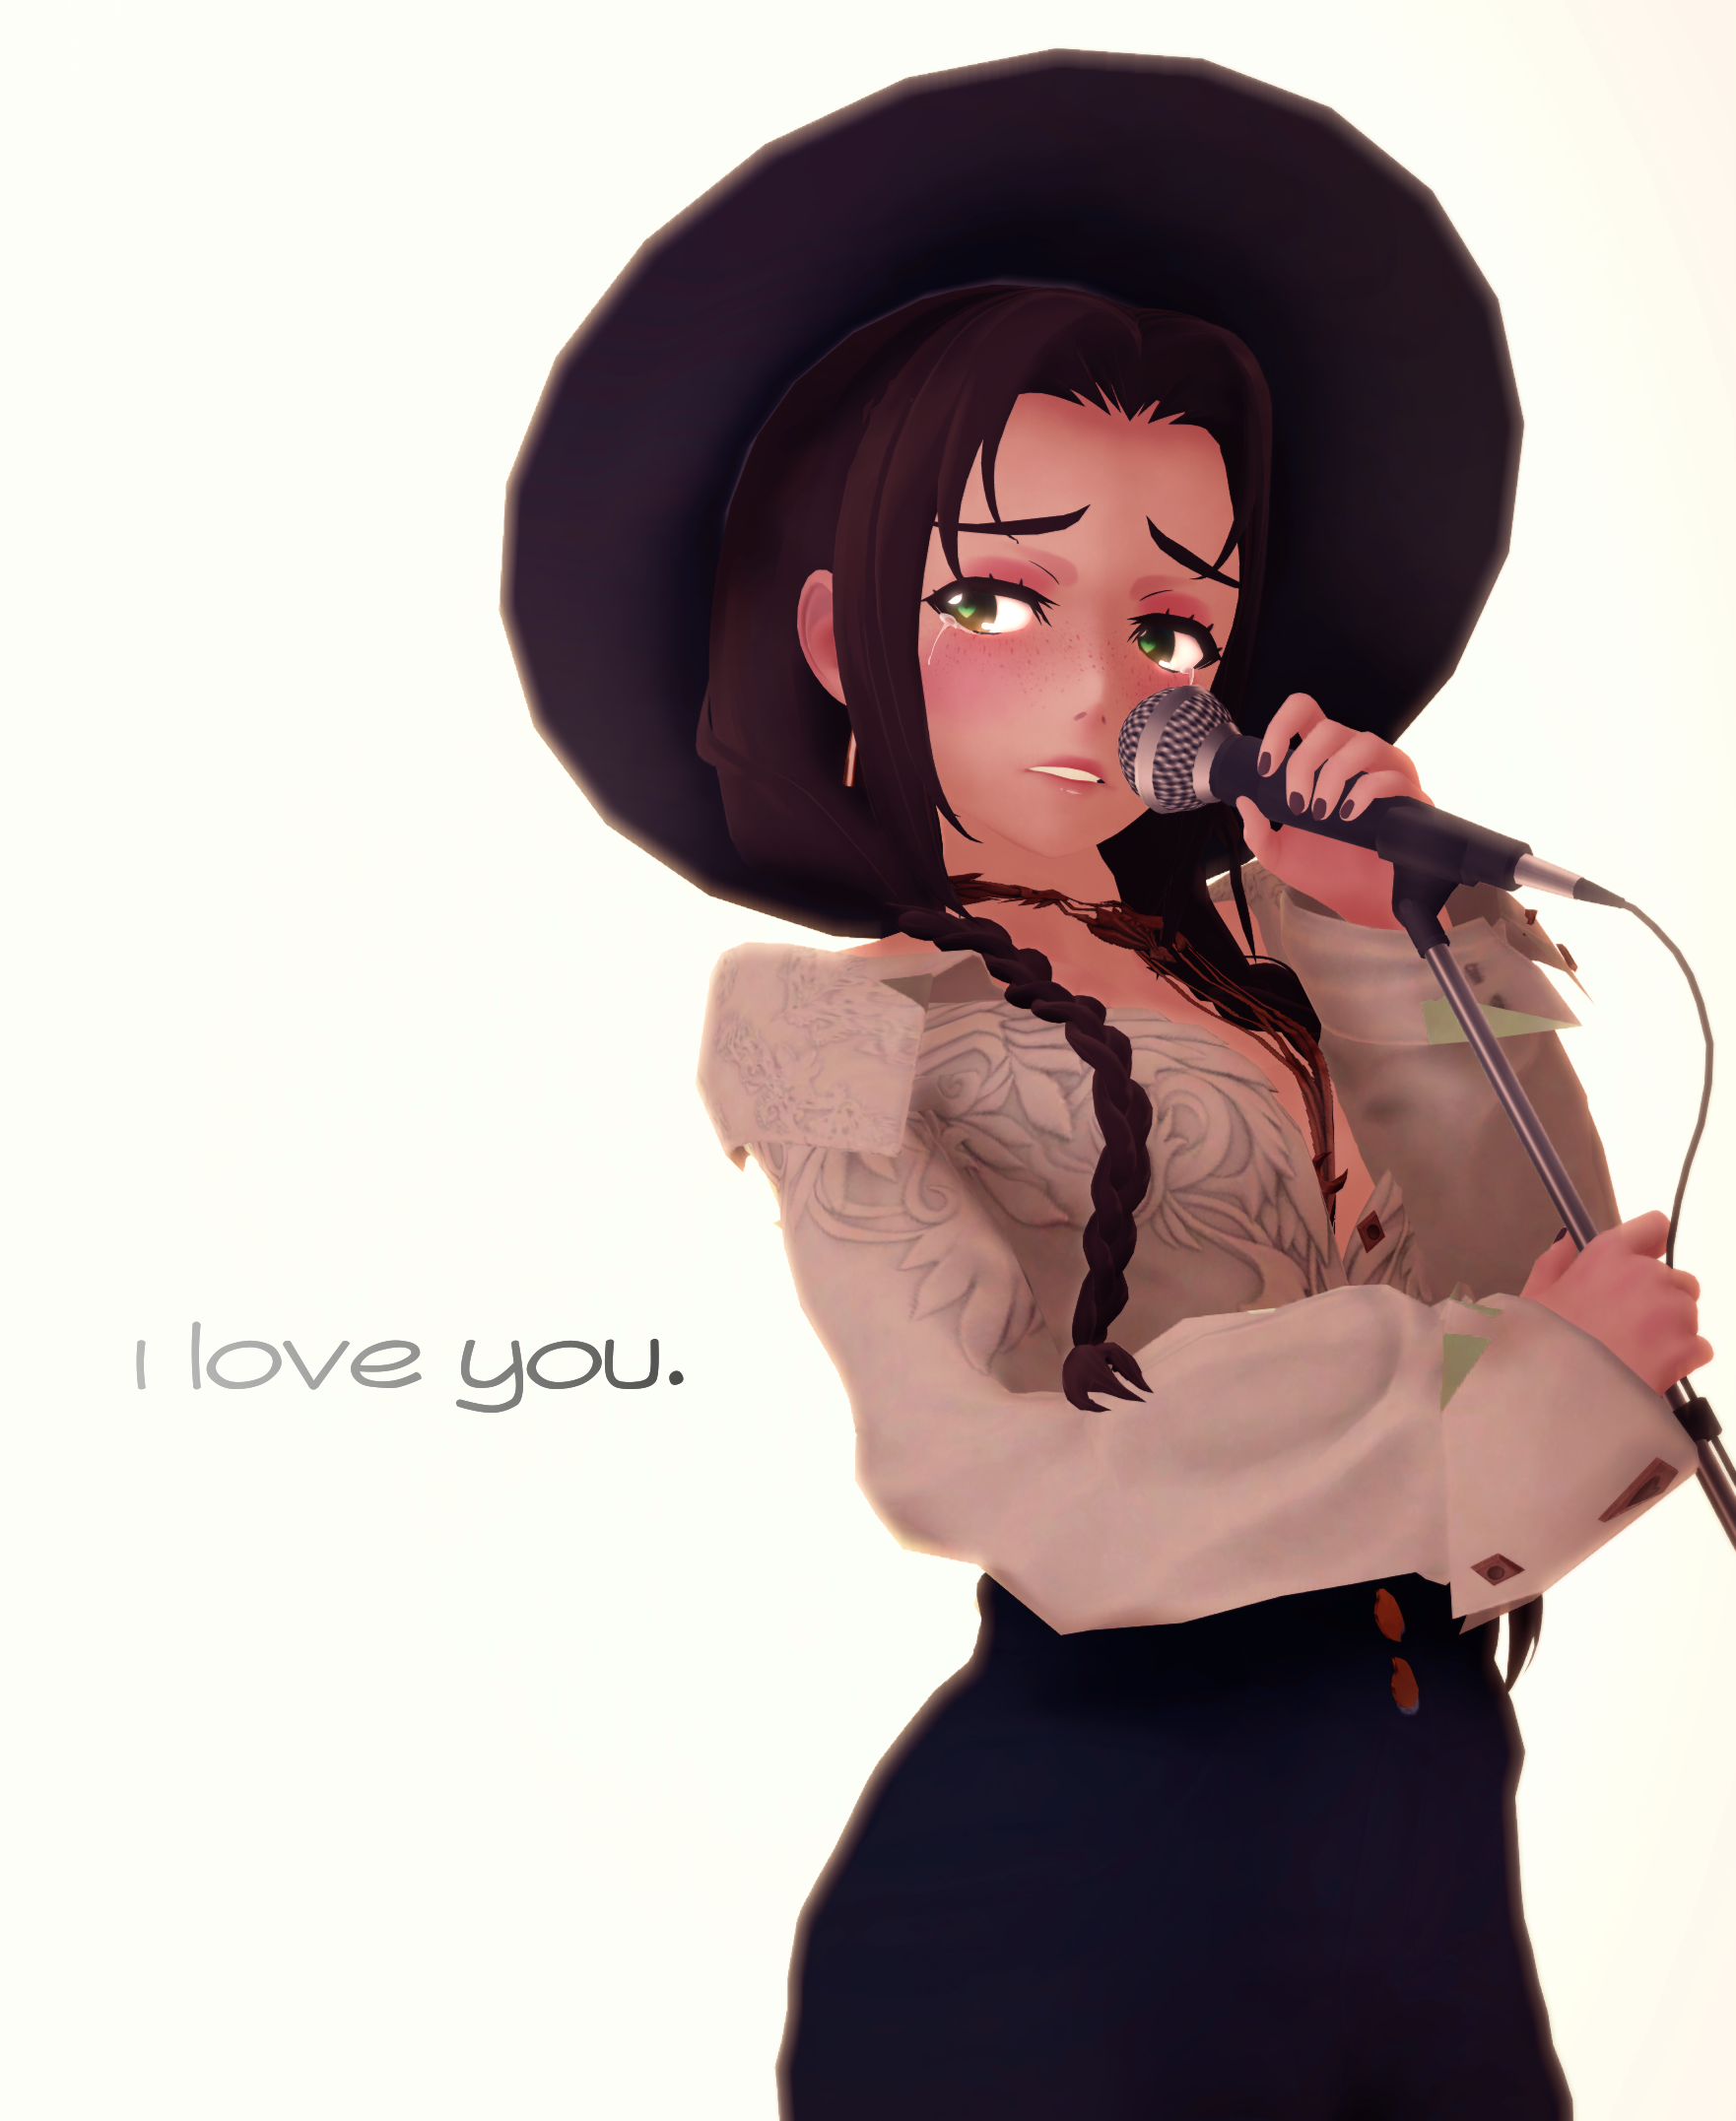 i love you. by Kit-Cat-Kisses